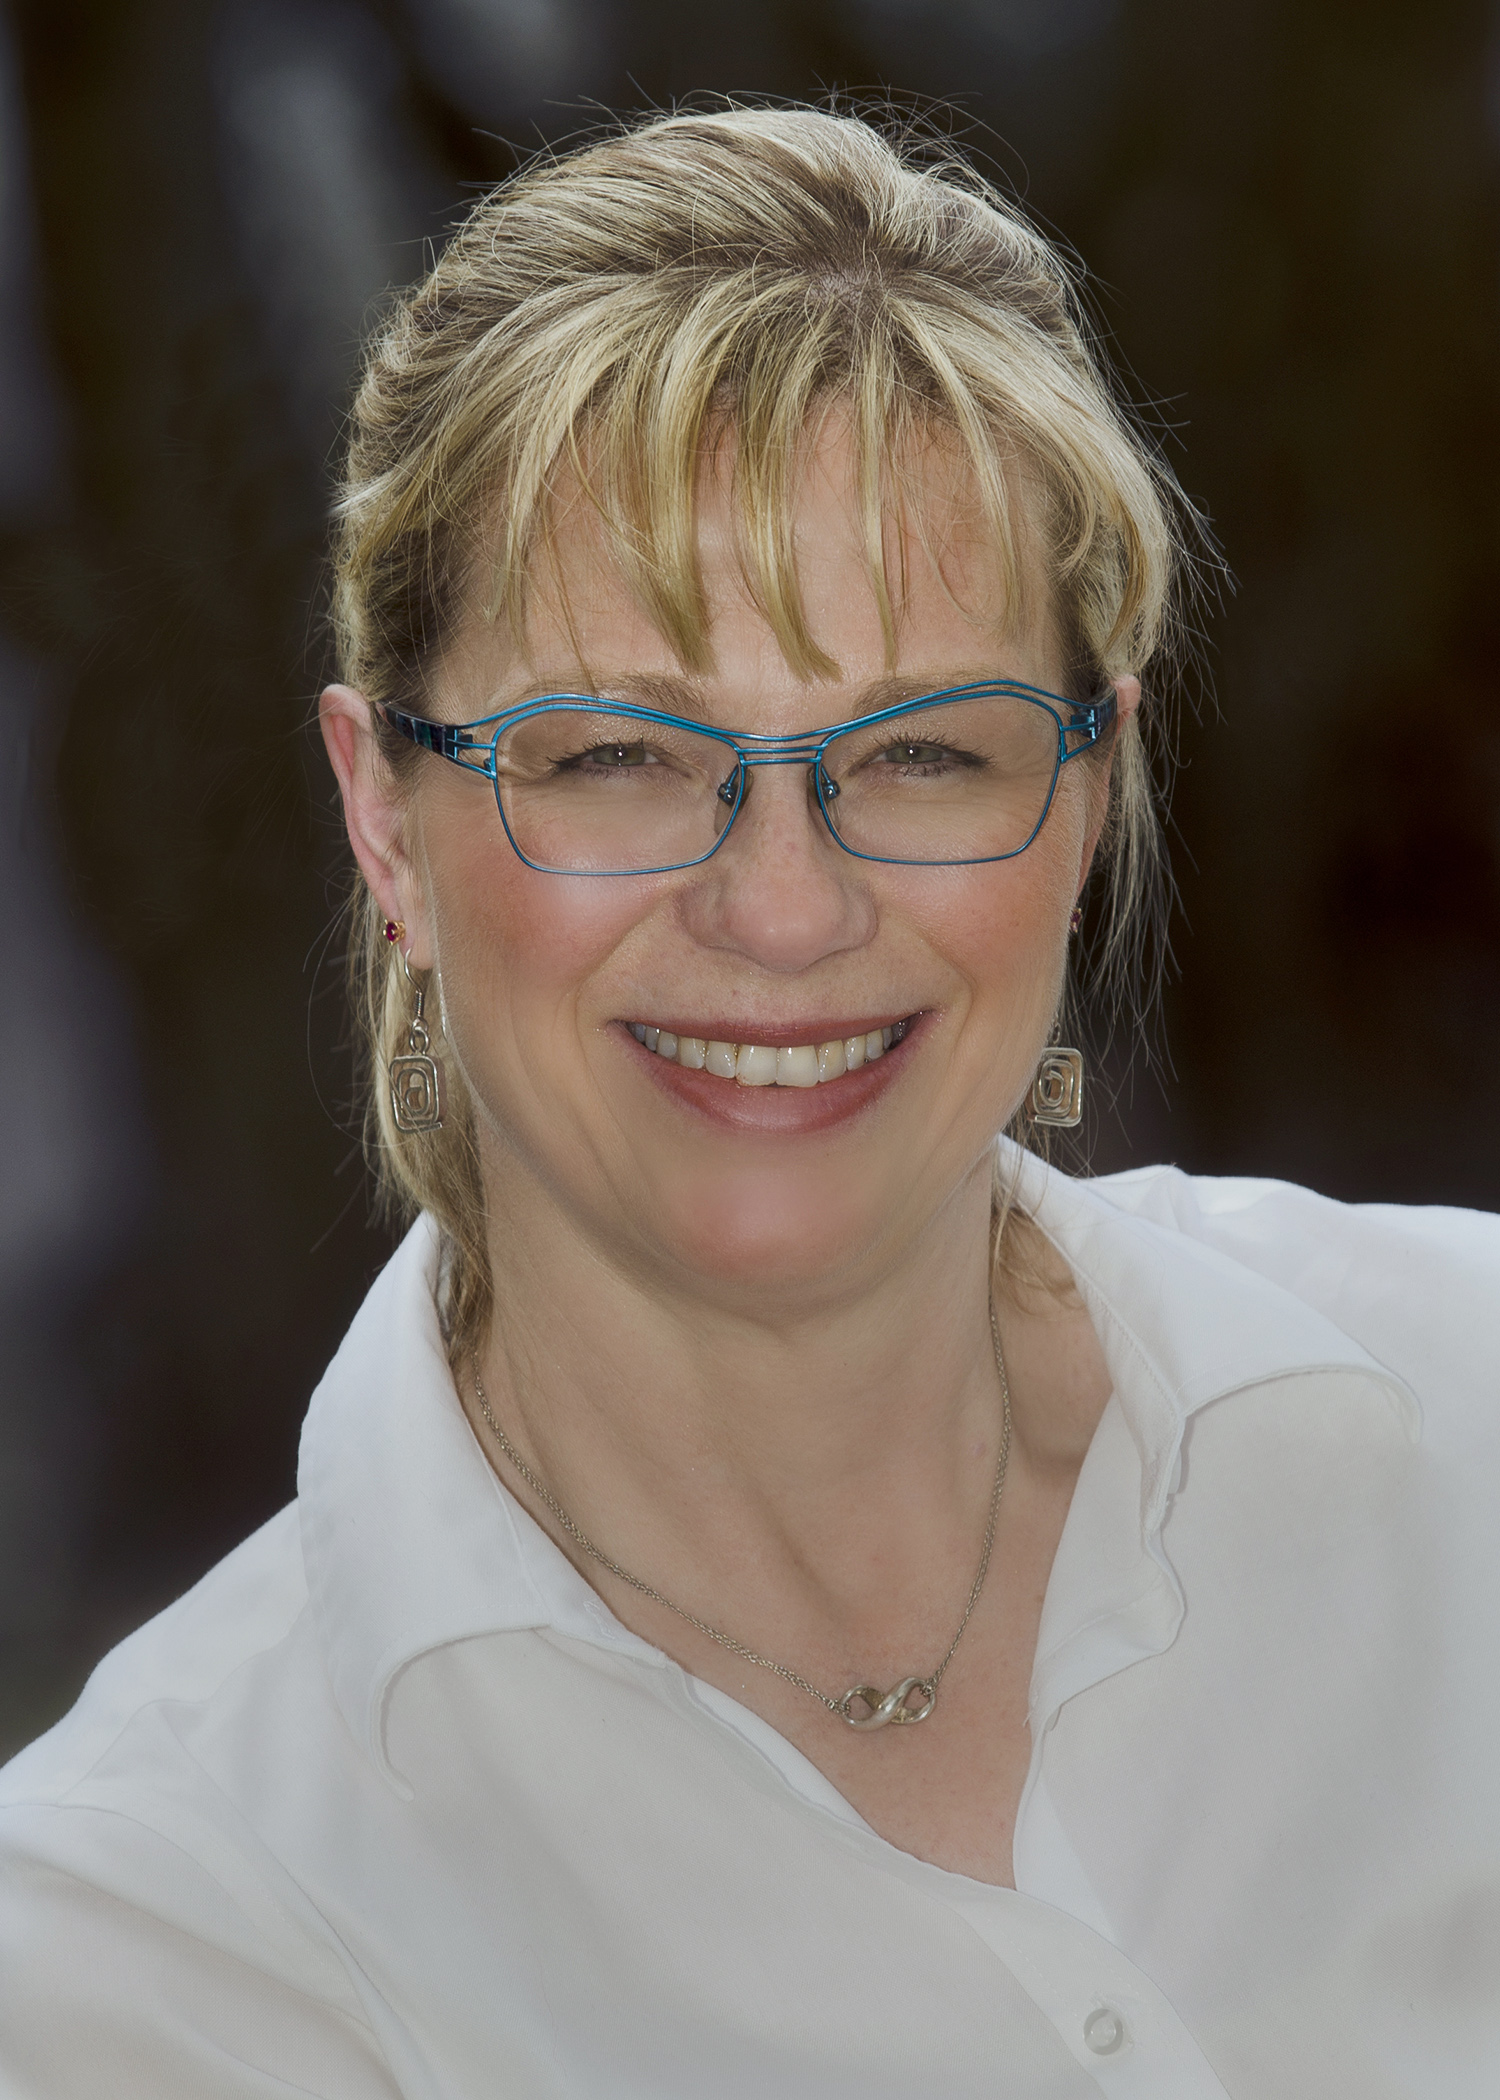 Angela Spalsbury, Ph.D., has been selected as the new dean and chief administrative officer of Kent State University at Geauga in Burton, Ohio, and Kent State's Regional Academic Center in Twinsburg, Ohio.